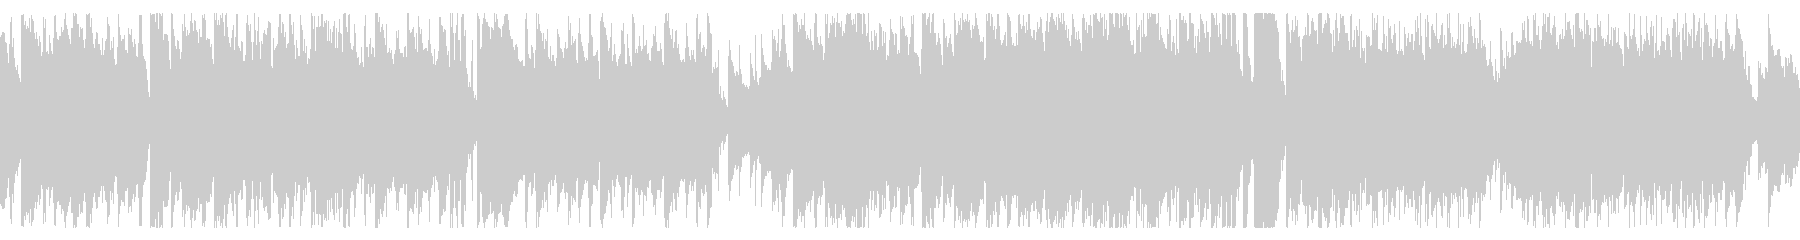 A suspicious waltz in the image of a demonic party's unreproduced waveform